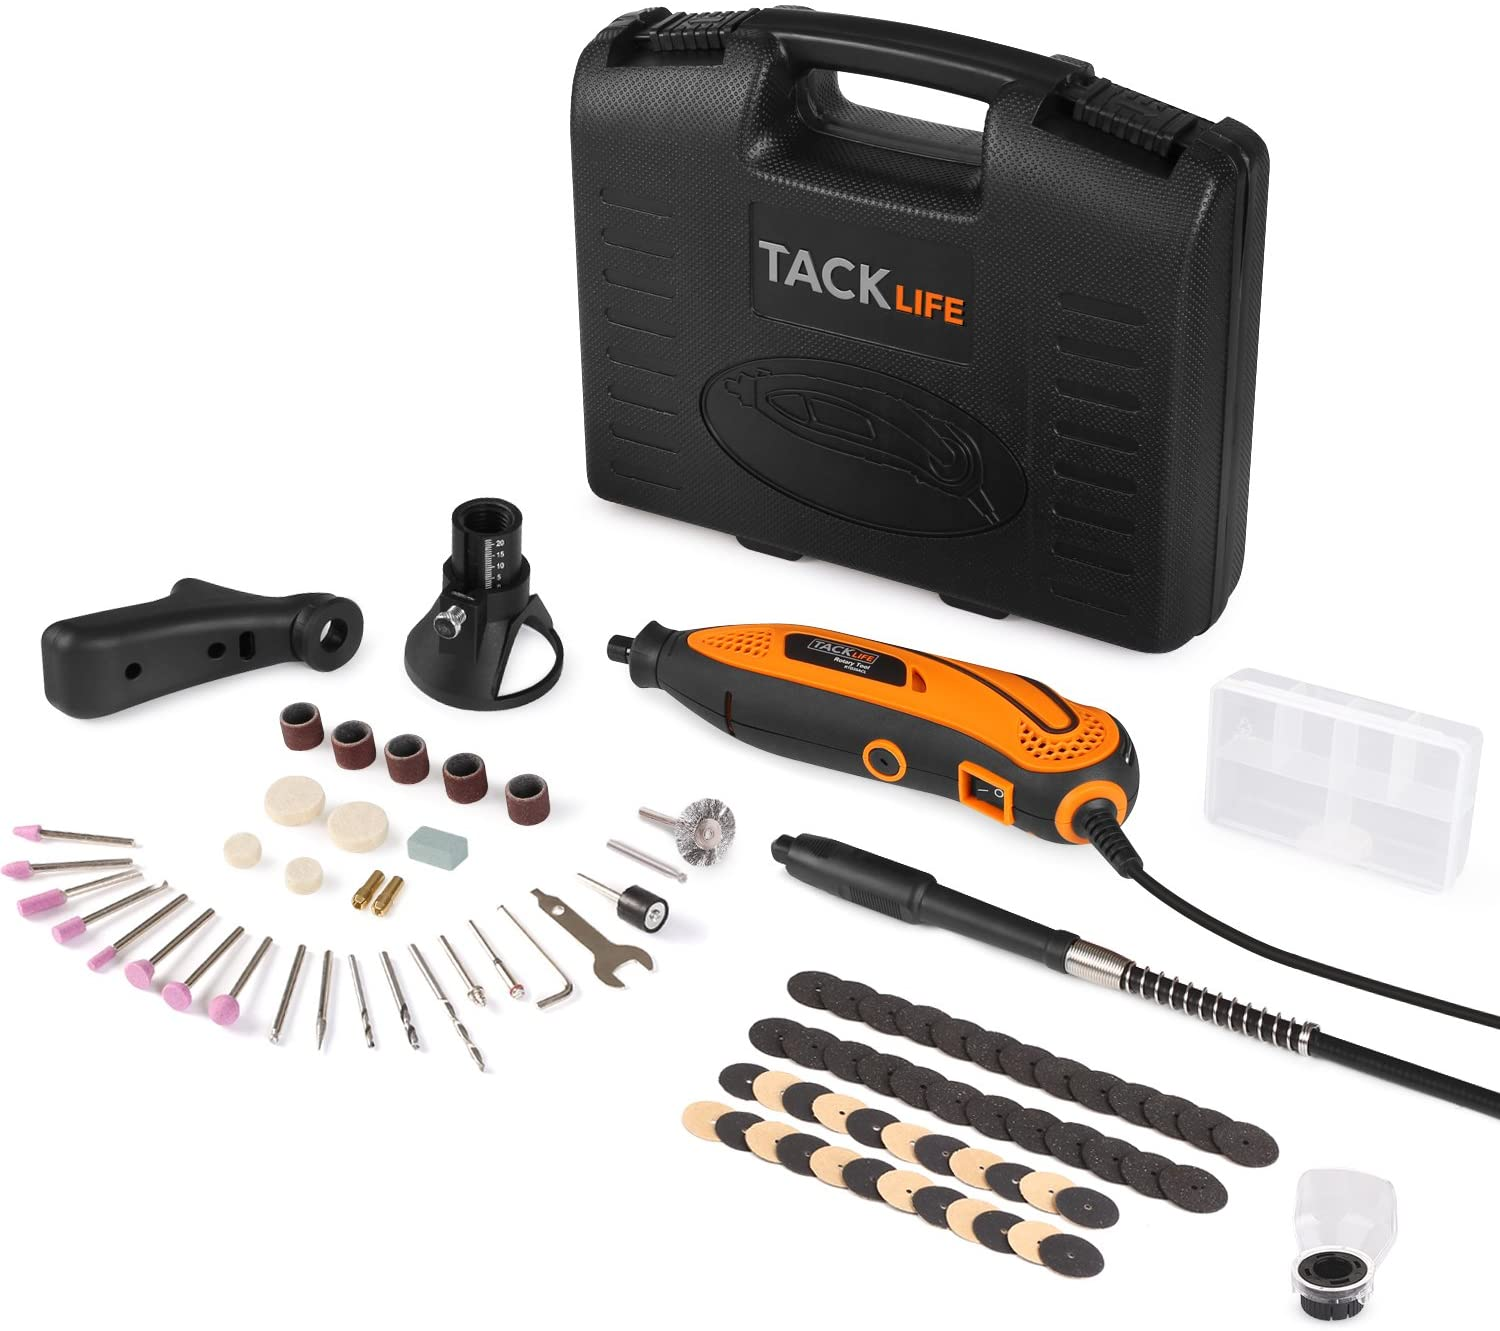 Tacklife RTD35ACL Advanced Multi-functional Rotary Tool Kit